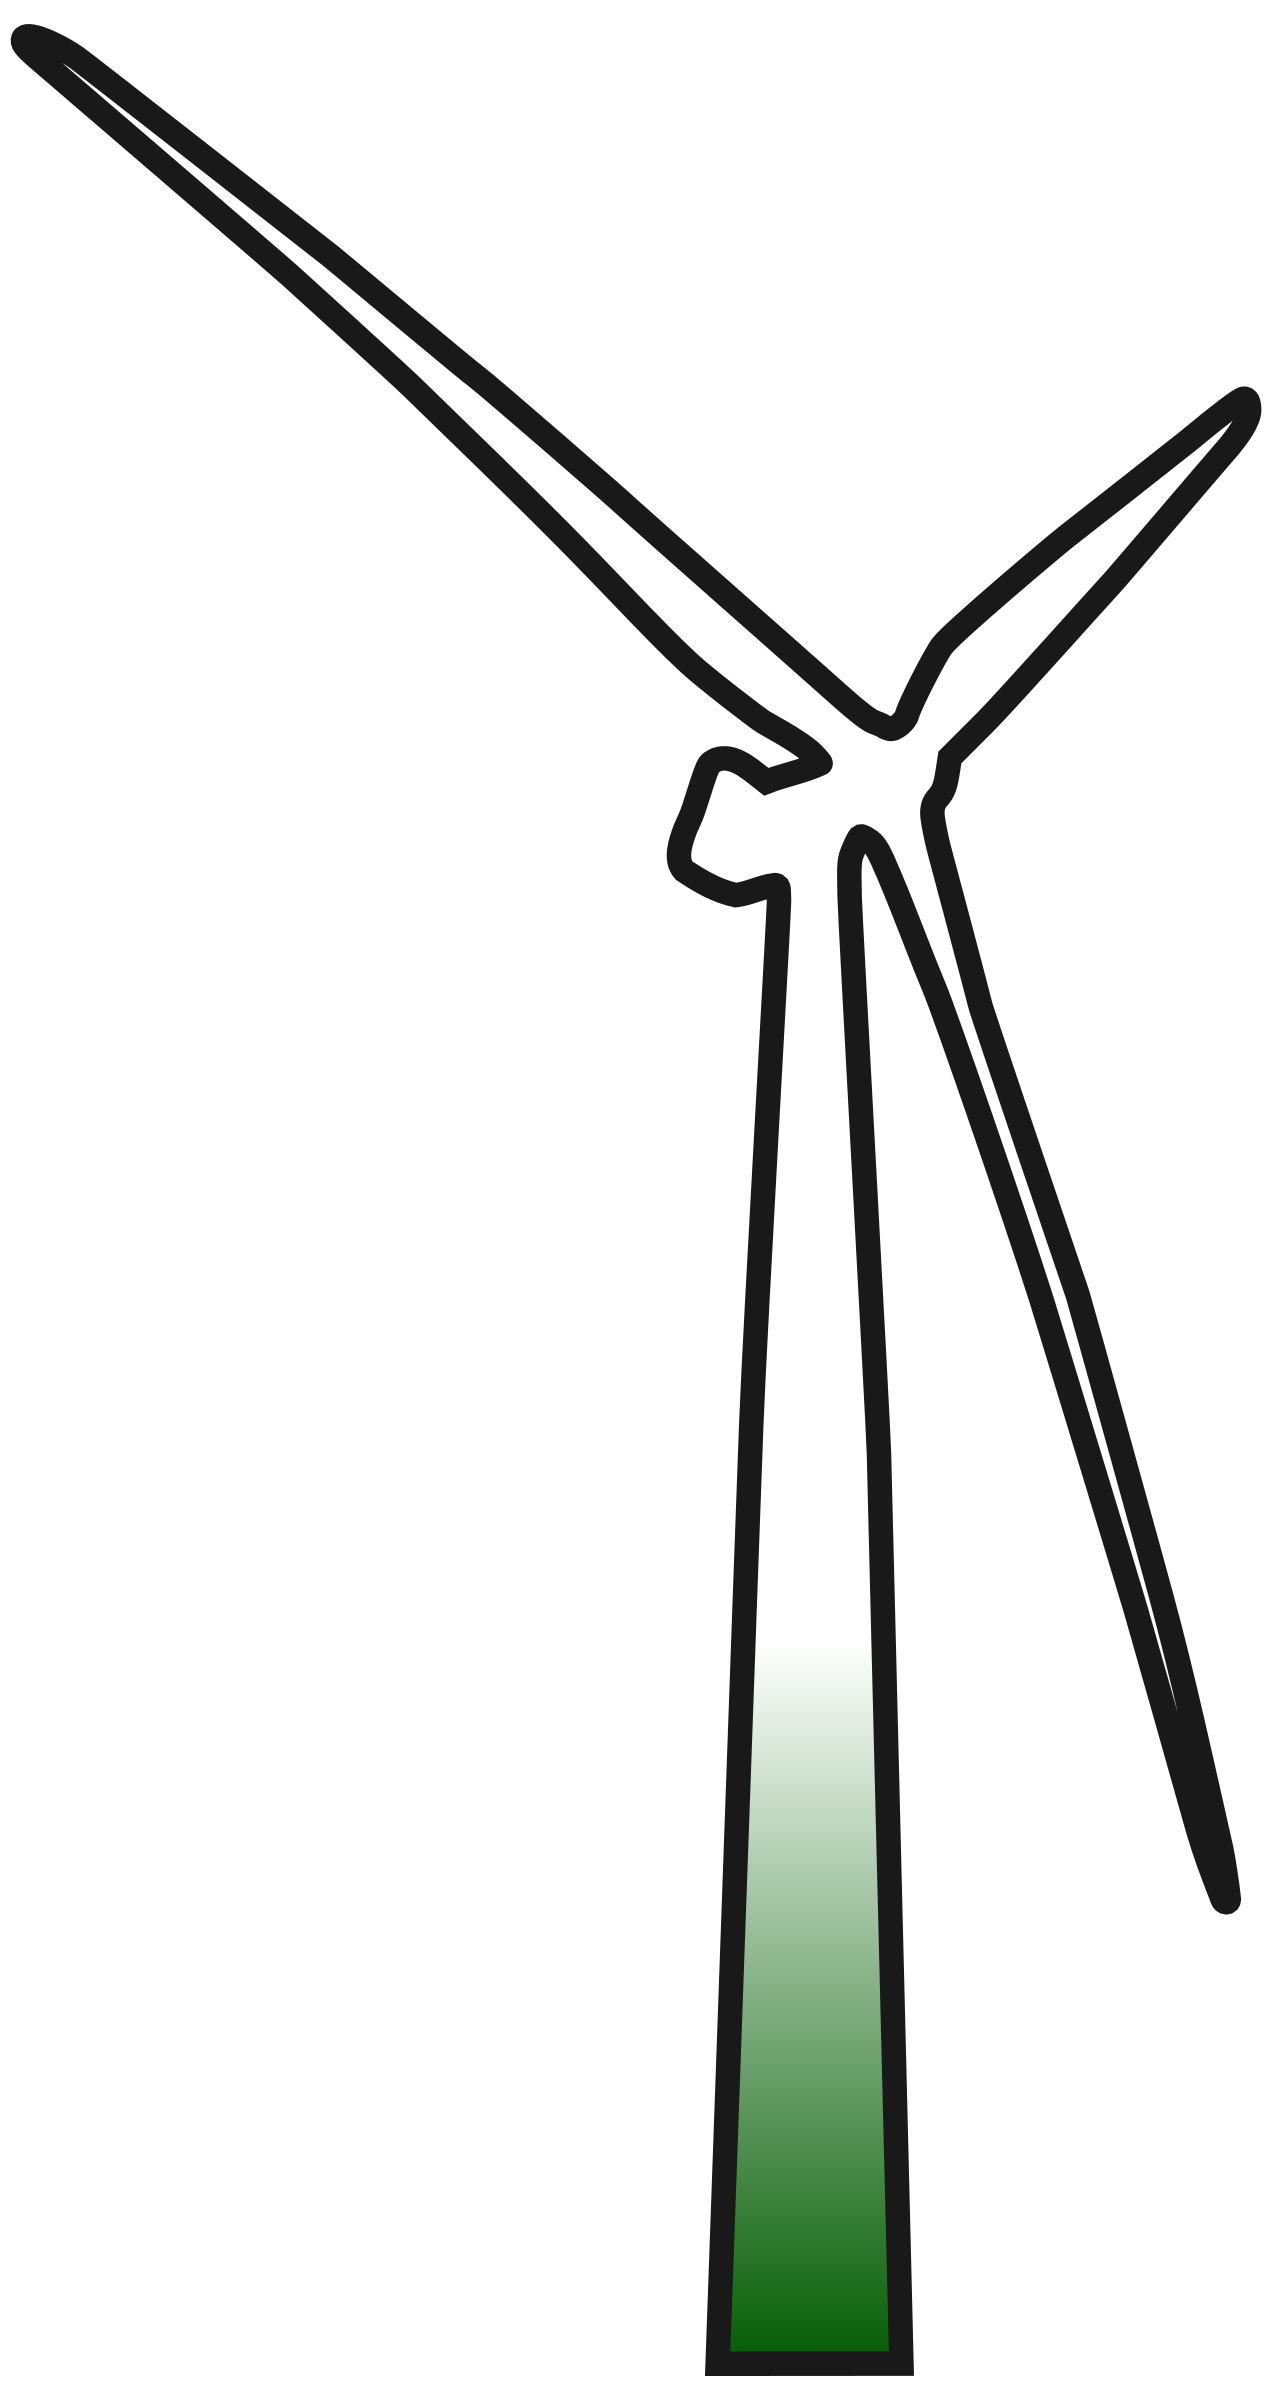 clipart wind turbine 2 rh openclipart org Cartoon Wind Turbine clipart wind turbine svg